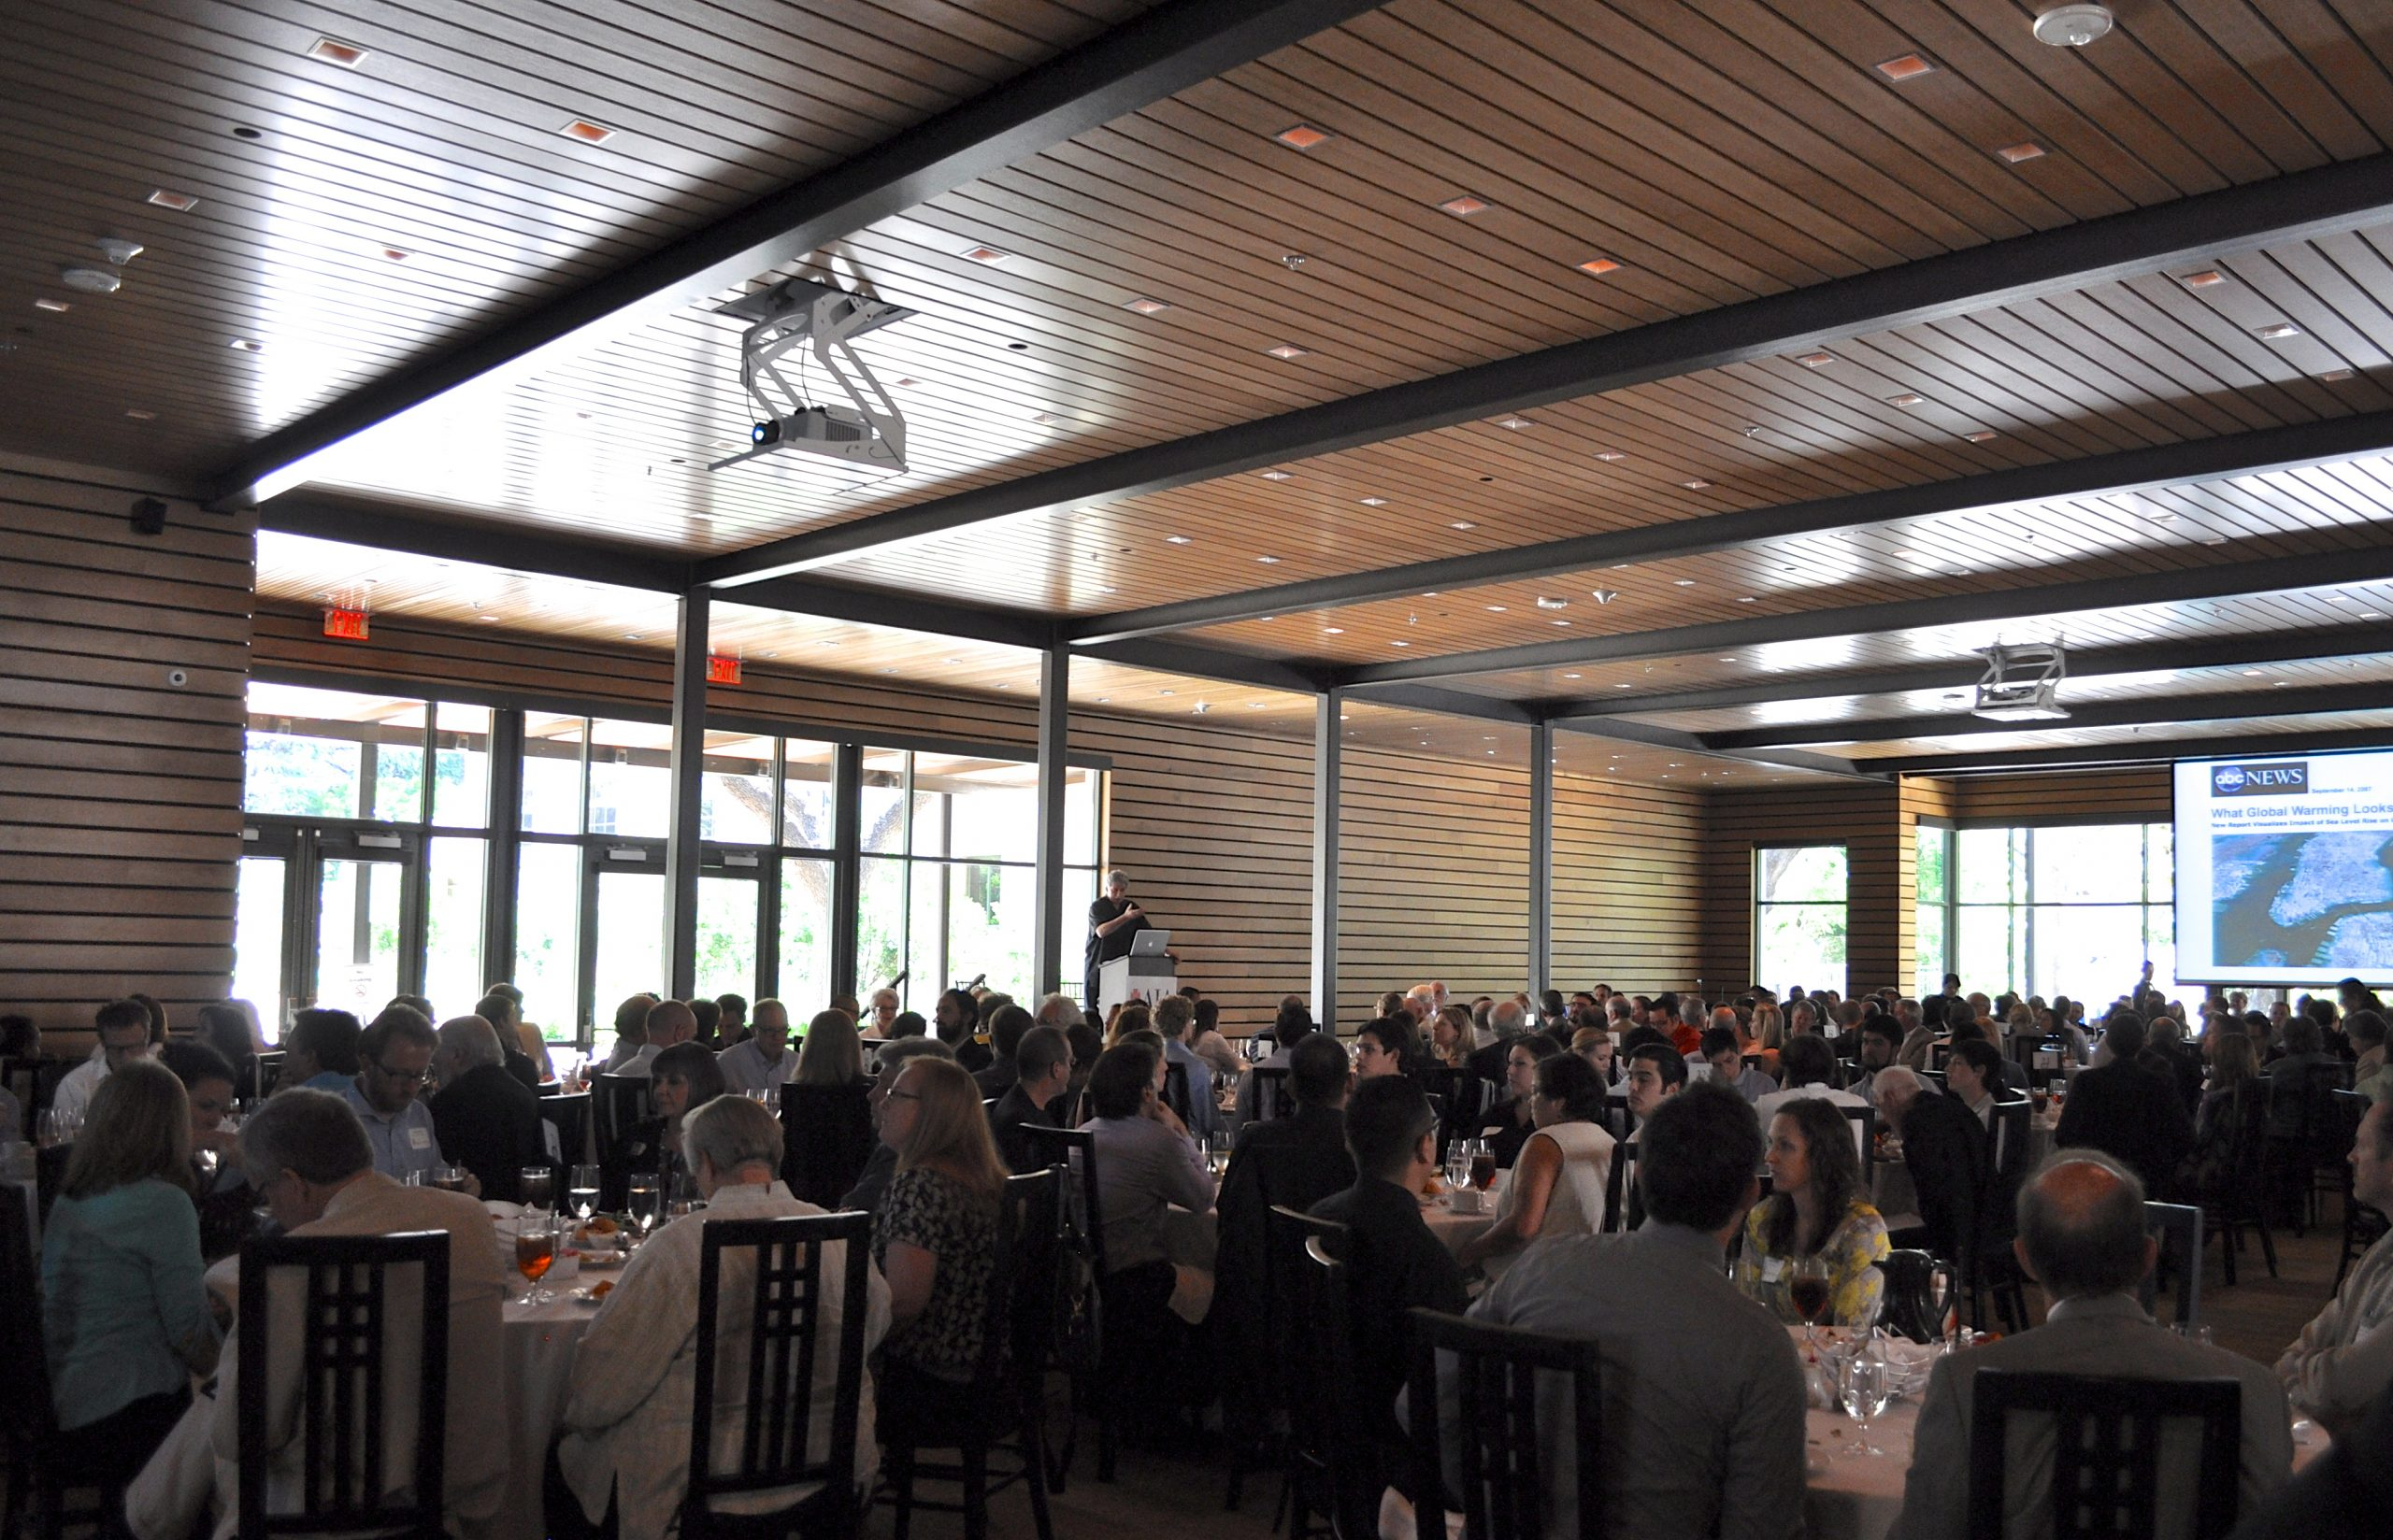 AIA San Antonio's third annual Sustainable Urban Development Luncheon at the Briscoe Art Museum. Photo by Iris Dimmick.